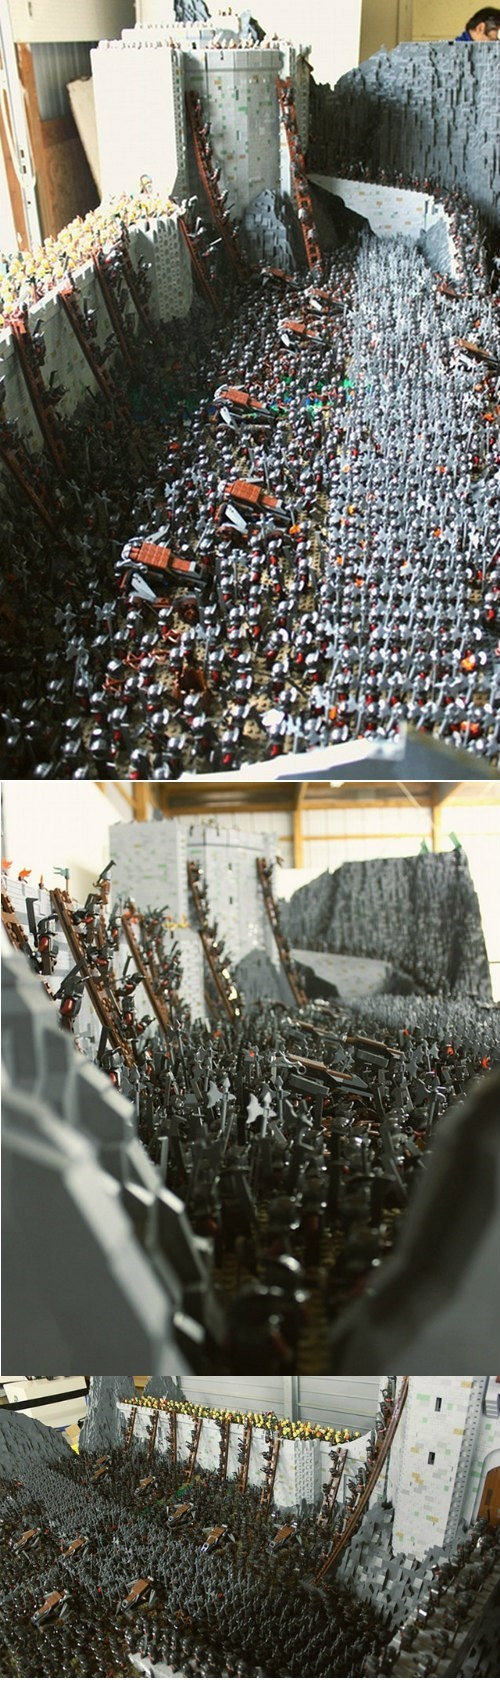 This LEGO Helm's Deep Model Will Make Your Nerdy Parts All Bothered